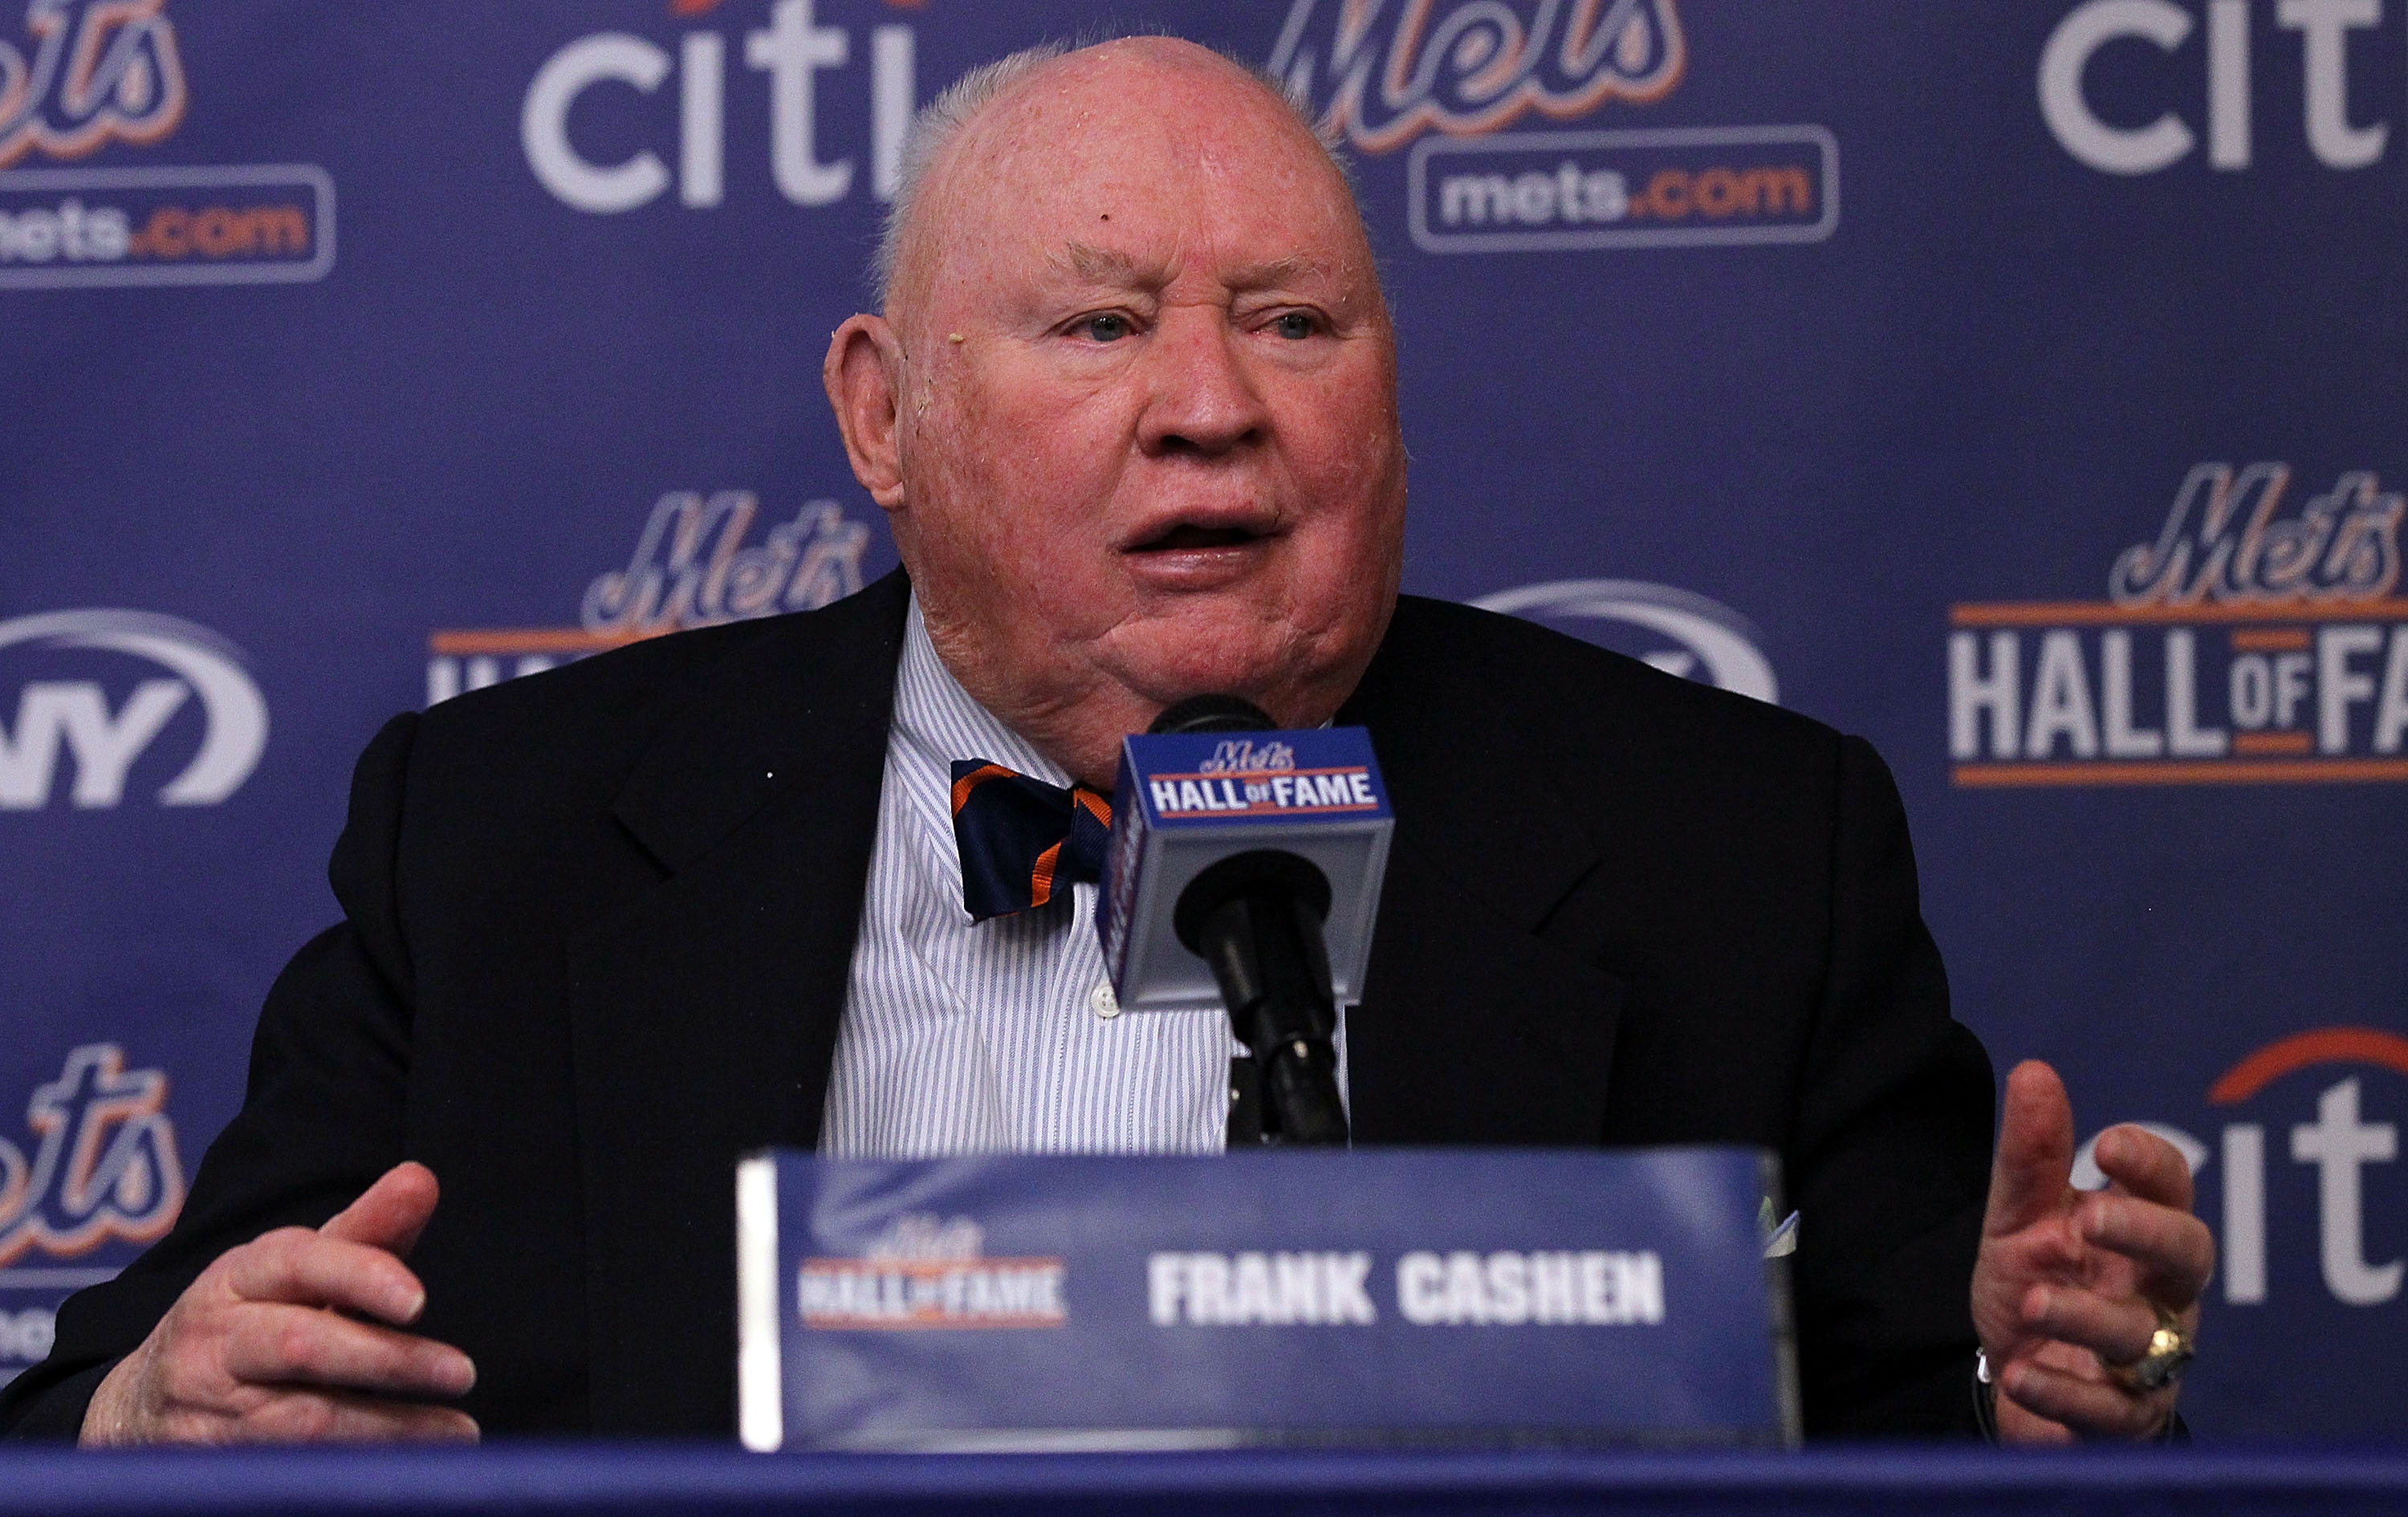 NEW YORK - JULY 31: Former general manager Frank Cashen speaks during a press conference for his induction into the New York Mets Hall of Fame prior to the game against the Arizona Diamondbacks on July 31, 2010 at Citi Field in the Flushing neighborhood o